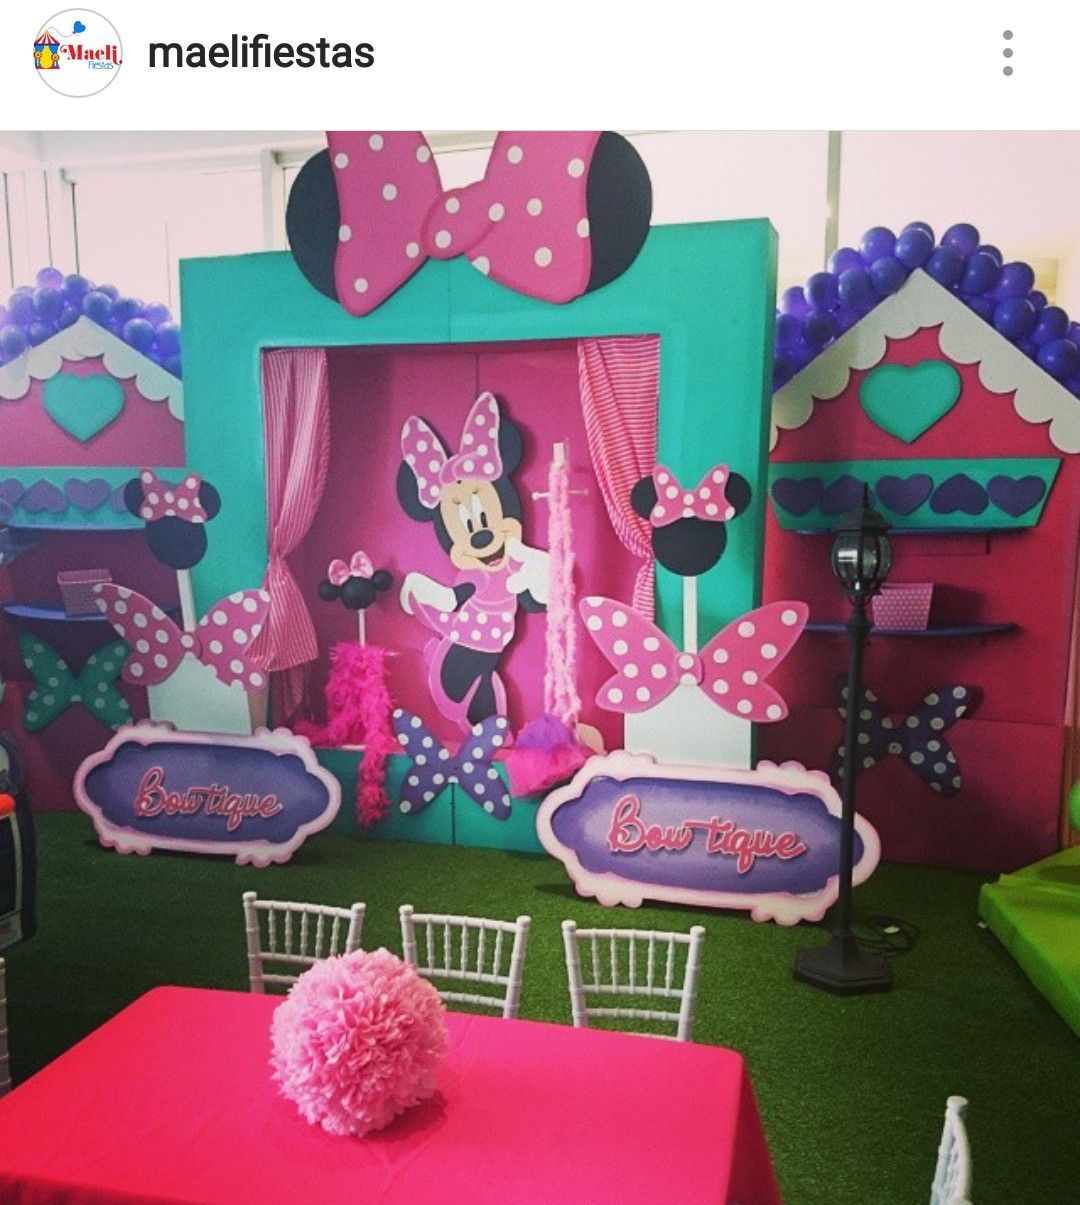 minnie 39 s boutique birthday party minnie mouse birthday. Black Bedroom Furniture Sets. Home Design Ideas